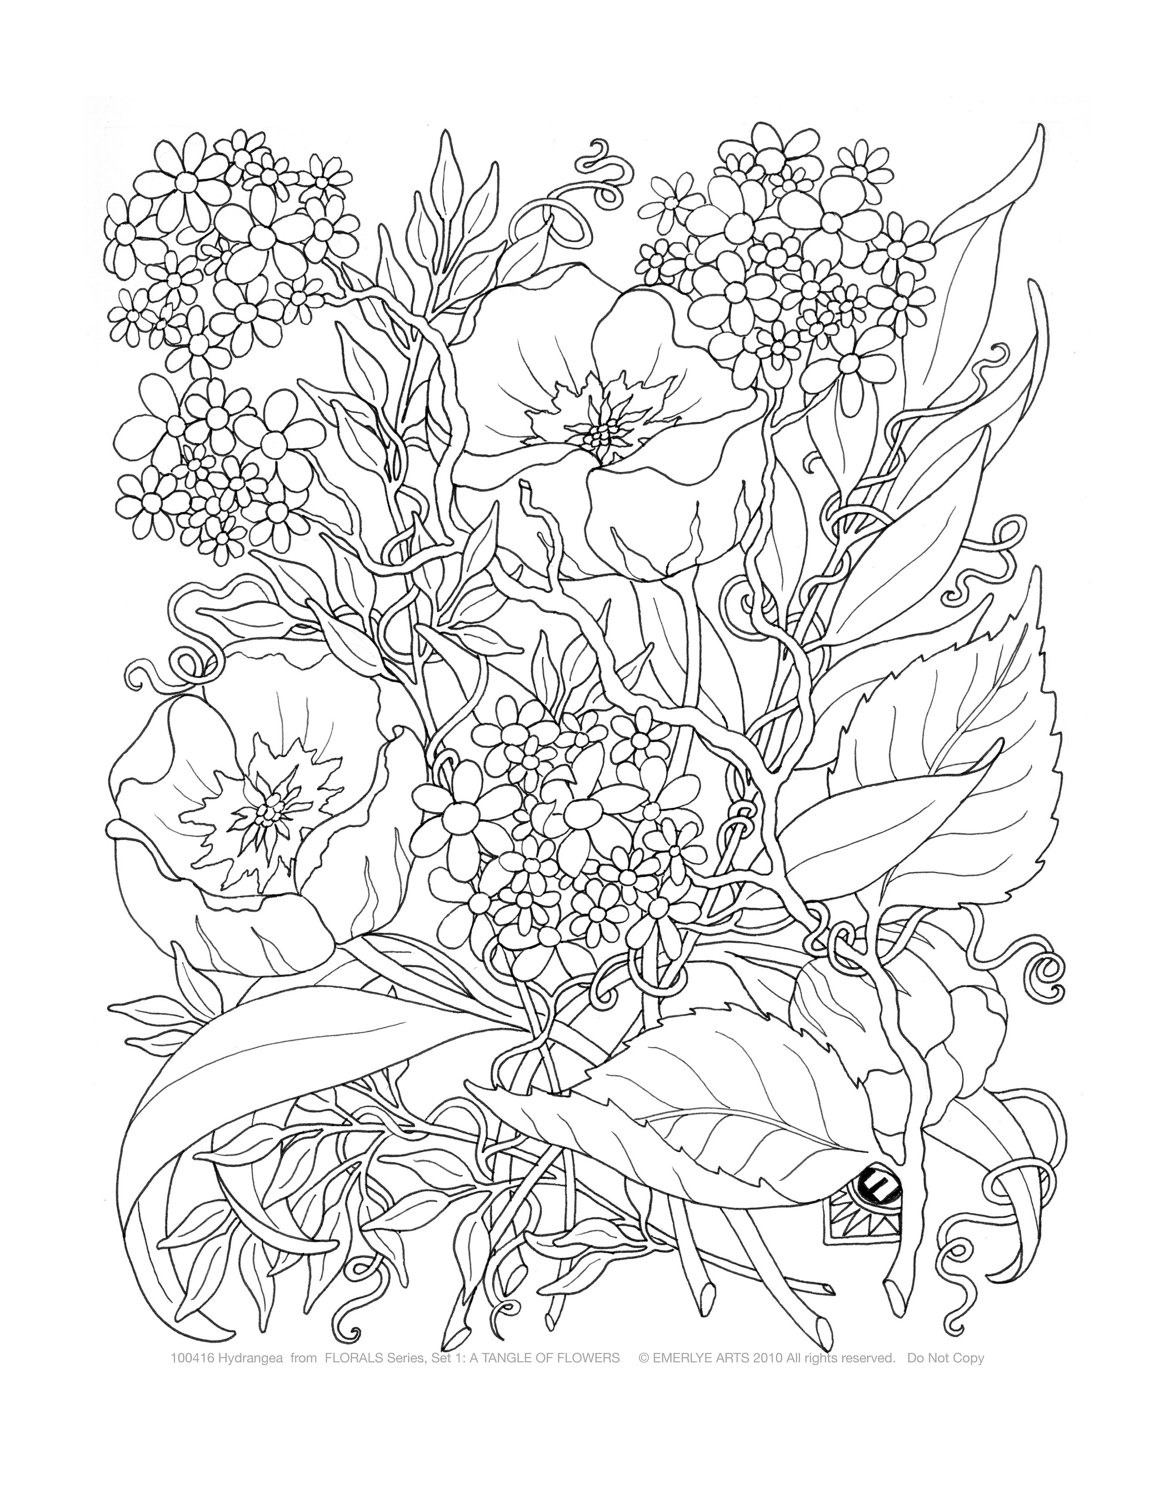 Free Printable Landscape Coloring Pages For Adults At Getdrawings